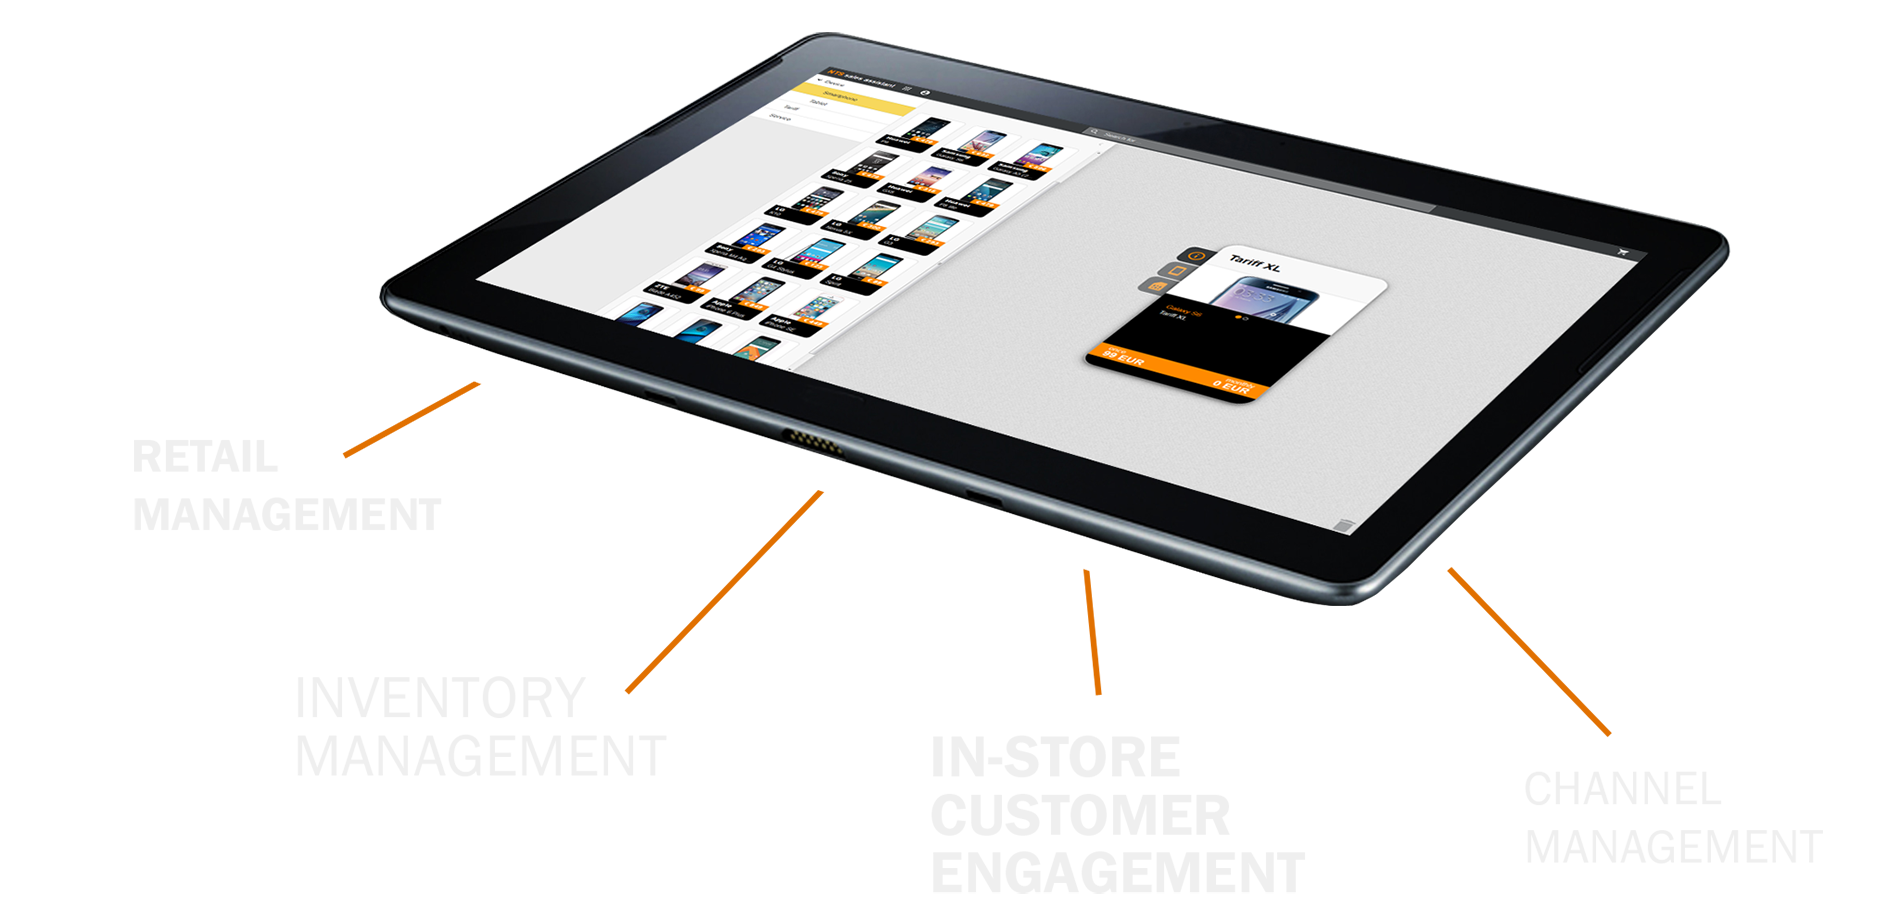 NTS Retail Management Software running on Tablet